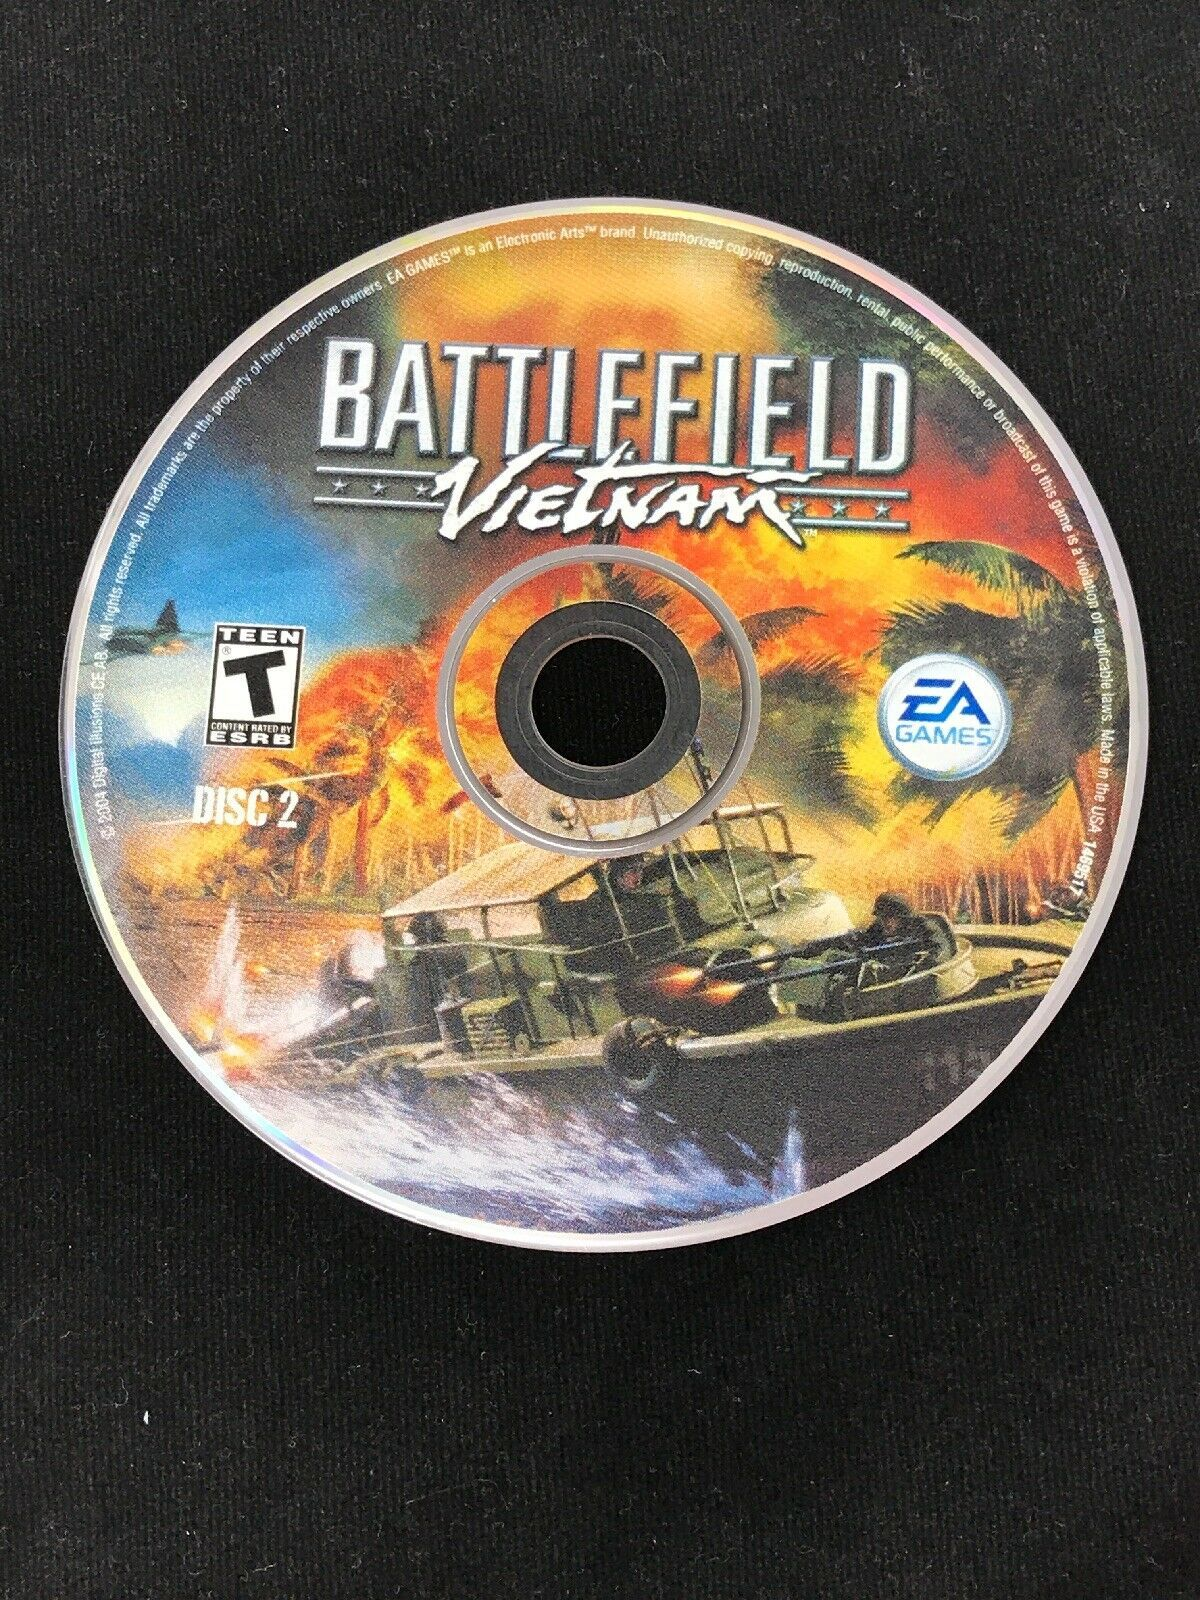 Battlefield Vietnam - PC 3 CD Computer Video Game w/ Key Code from EA Games